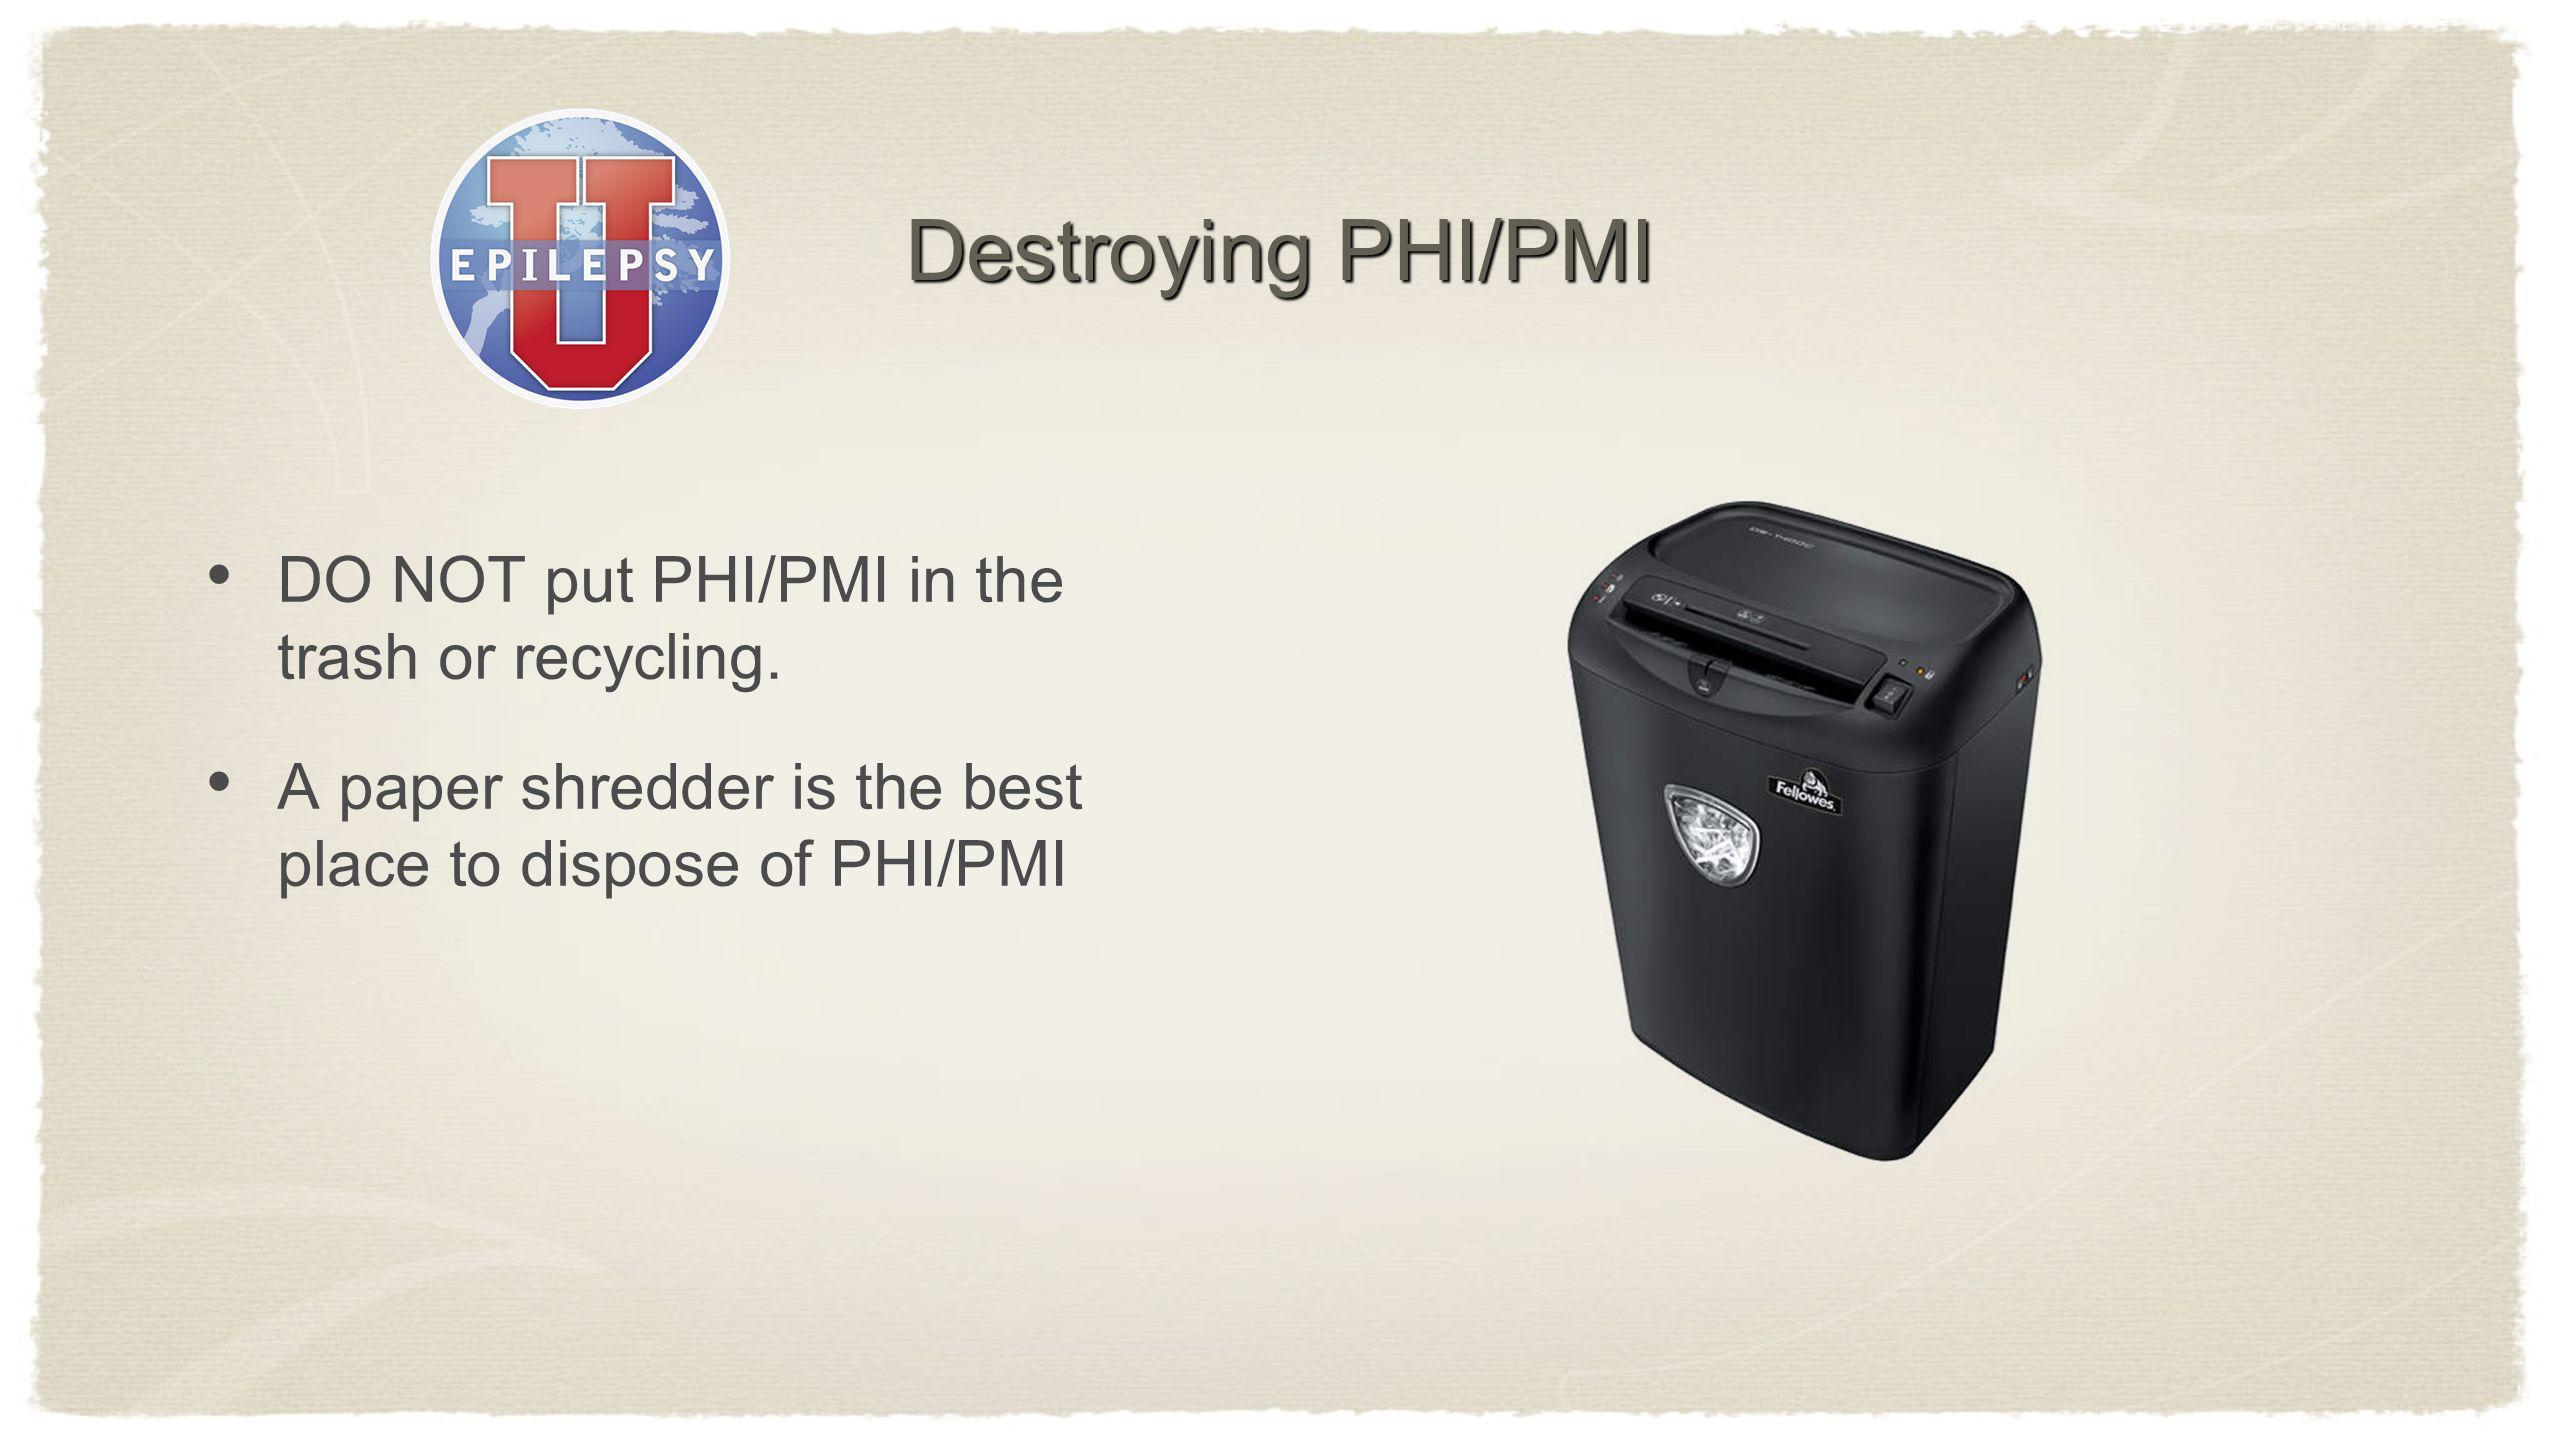 Destroying PHI/PMI DO NOT put PHI/PMI in the trash or recycling. A paper shredder is the best place to dispose of PHI/PMI